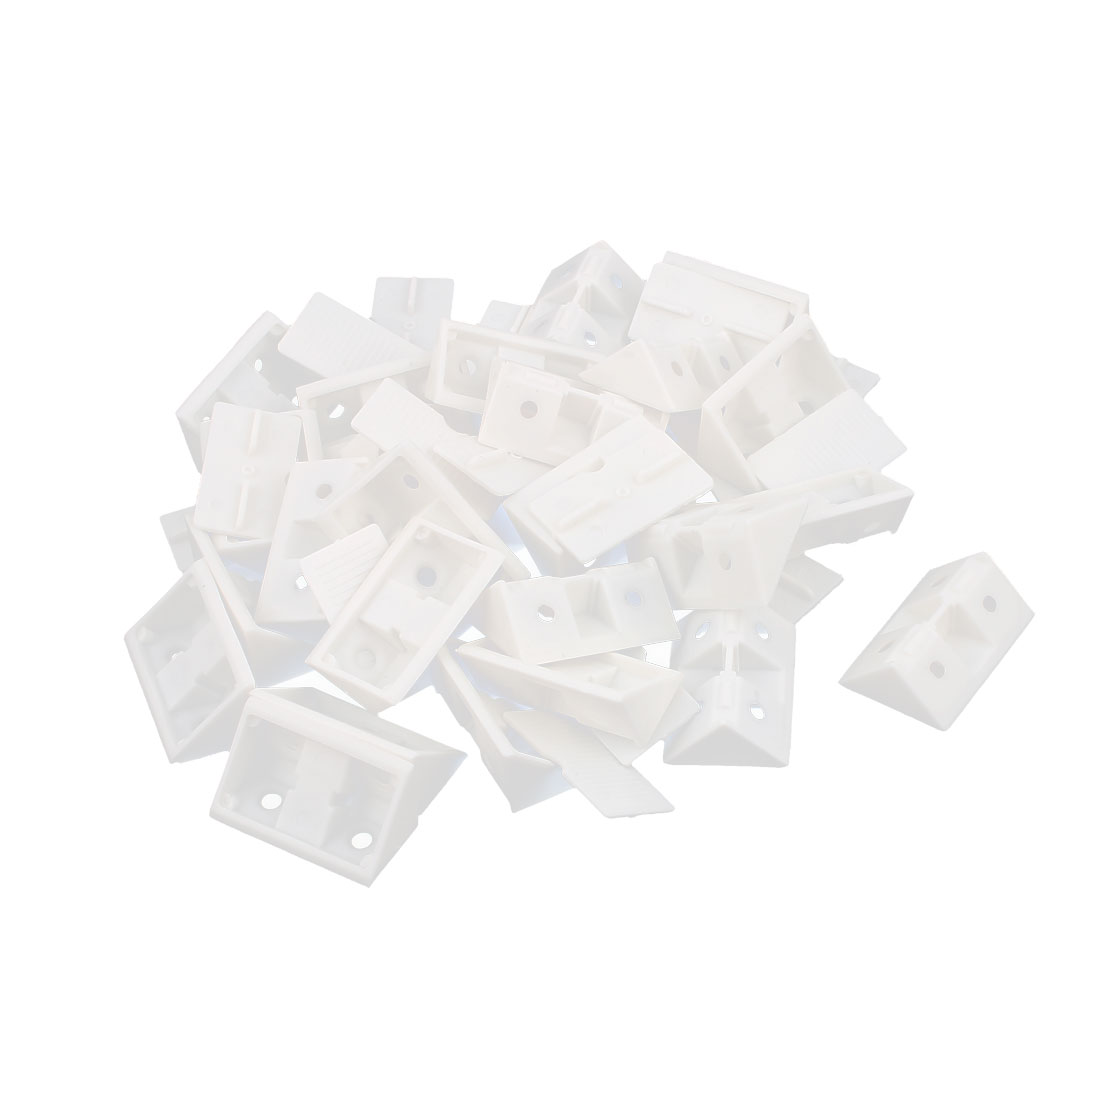 Shelf Door 42mm x 28mm x 15mm 4 Holes Plastic Angle Brackets White 25Pcs